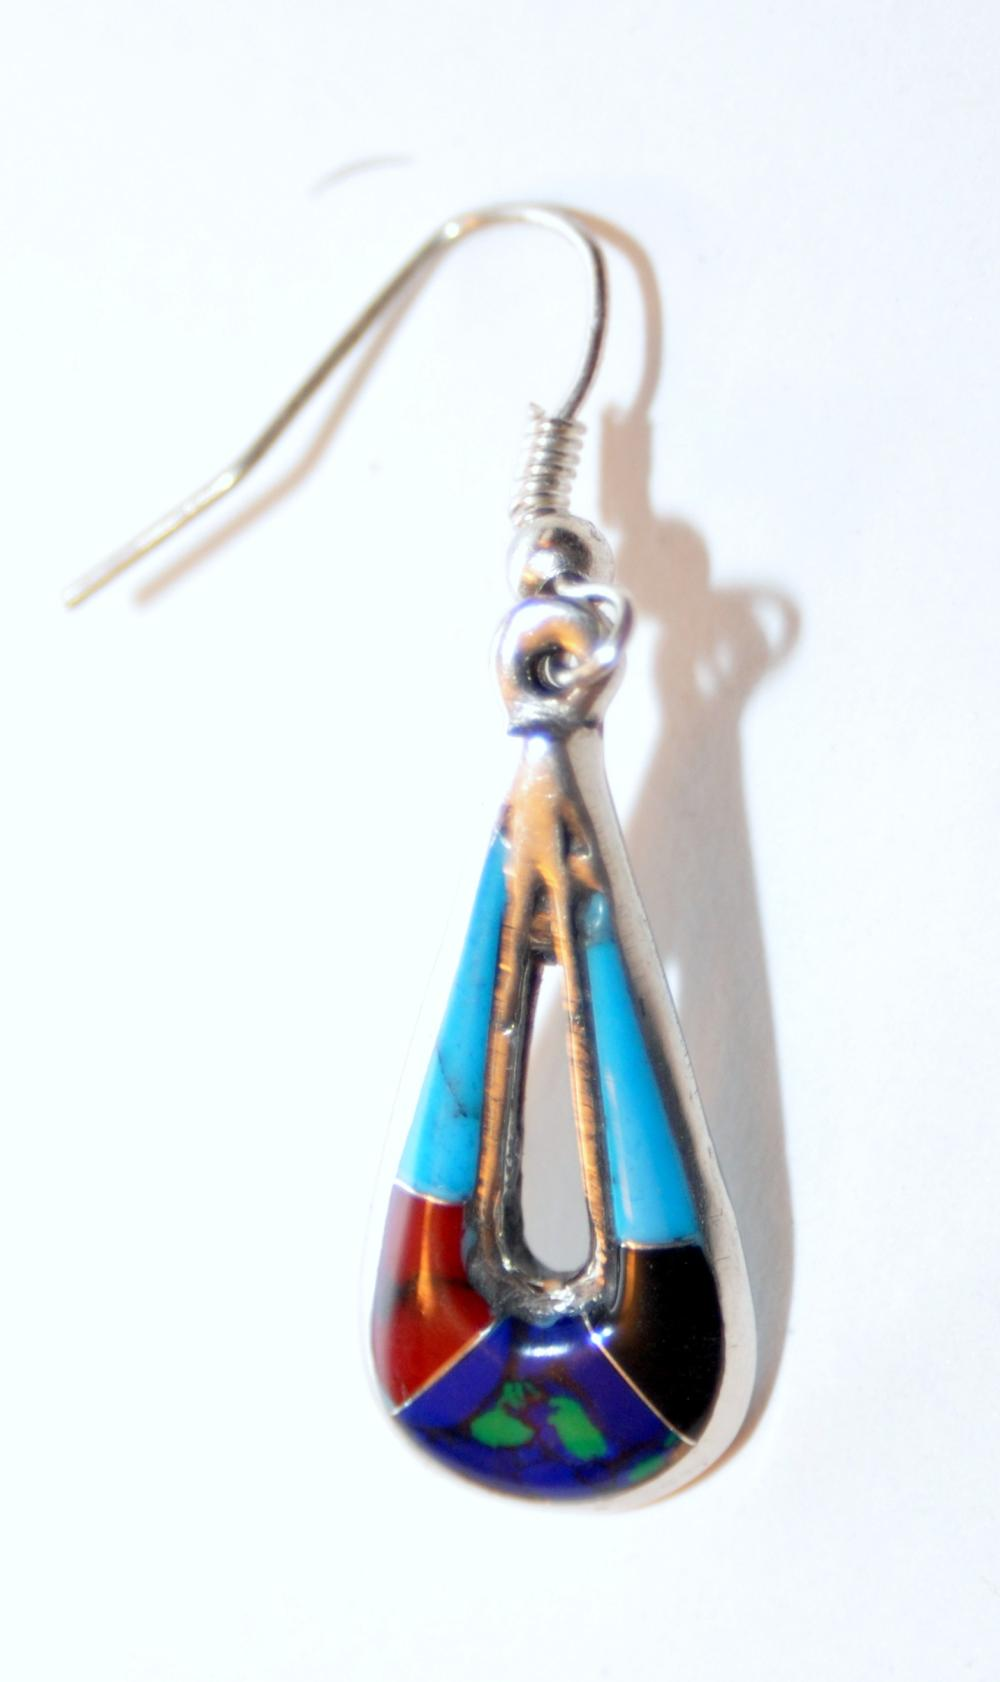 Lot 281: Gemstone inlaid earrings French bails